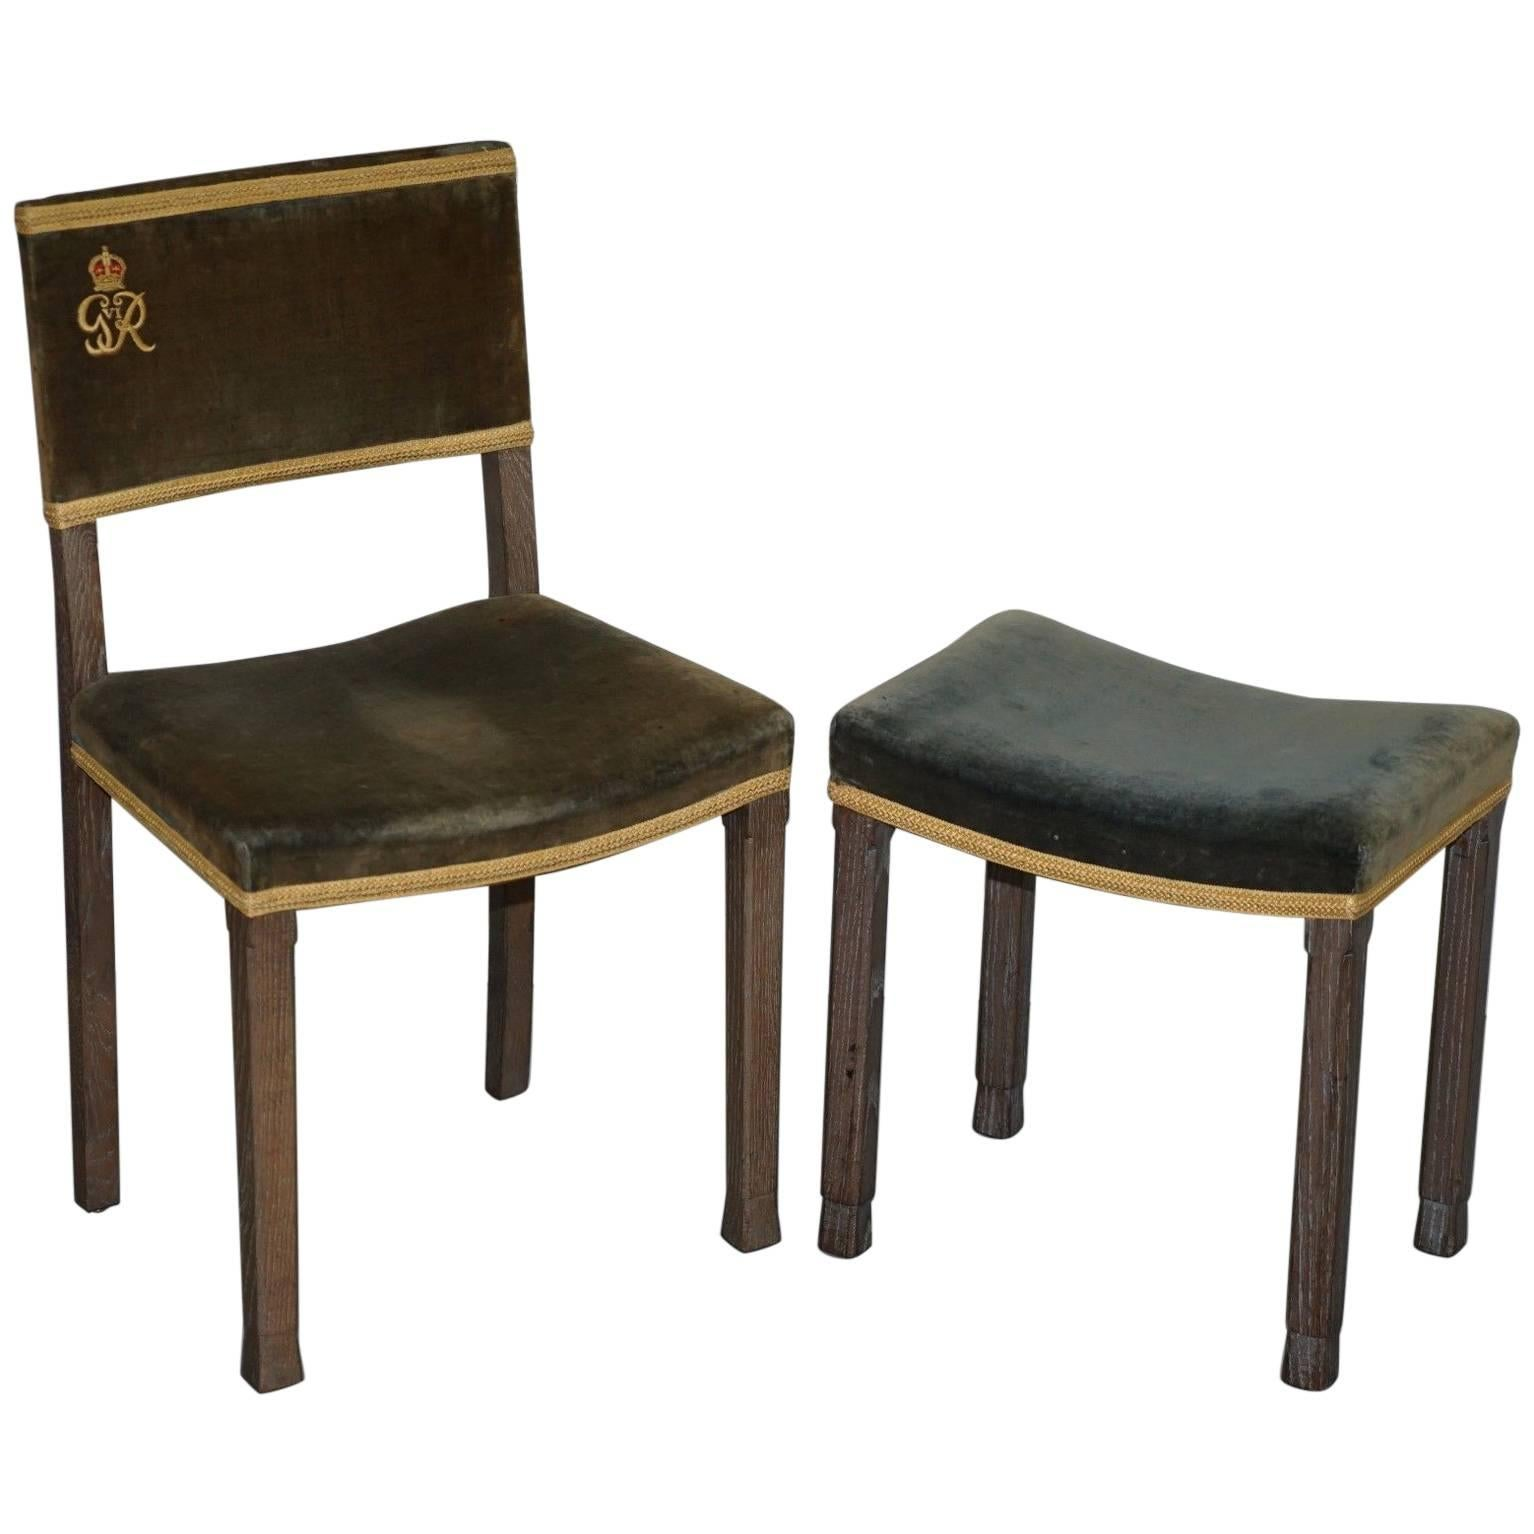 Gentil Exceptional 1937 King George VI Coronation Chair And Stool Fully Stamped  For Sale